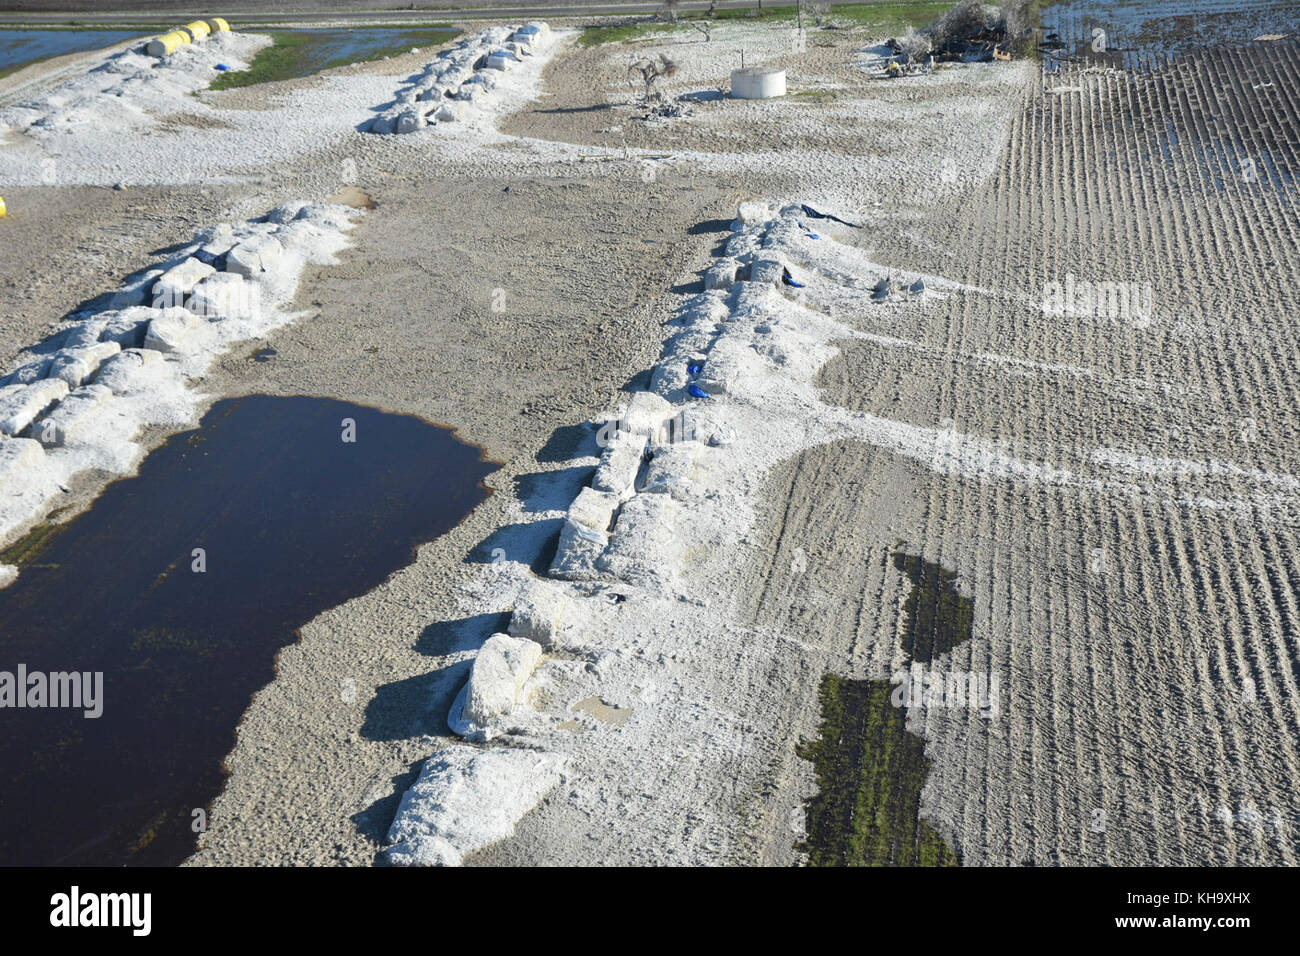 Cotton modules destroyed by Hurricane Harvey in Refugio County, Texas - Stock Image